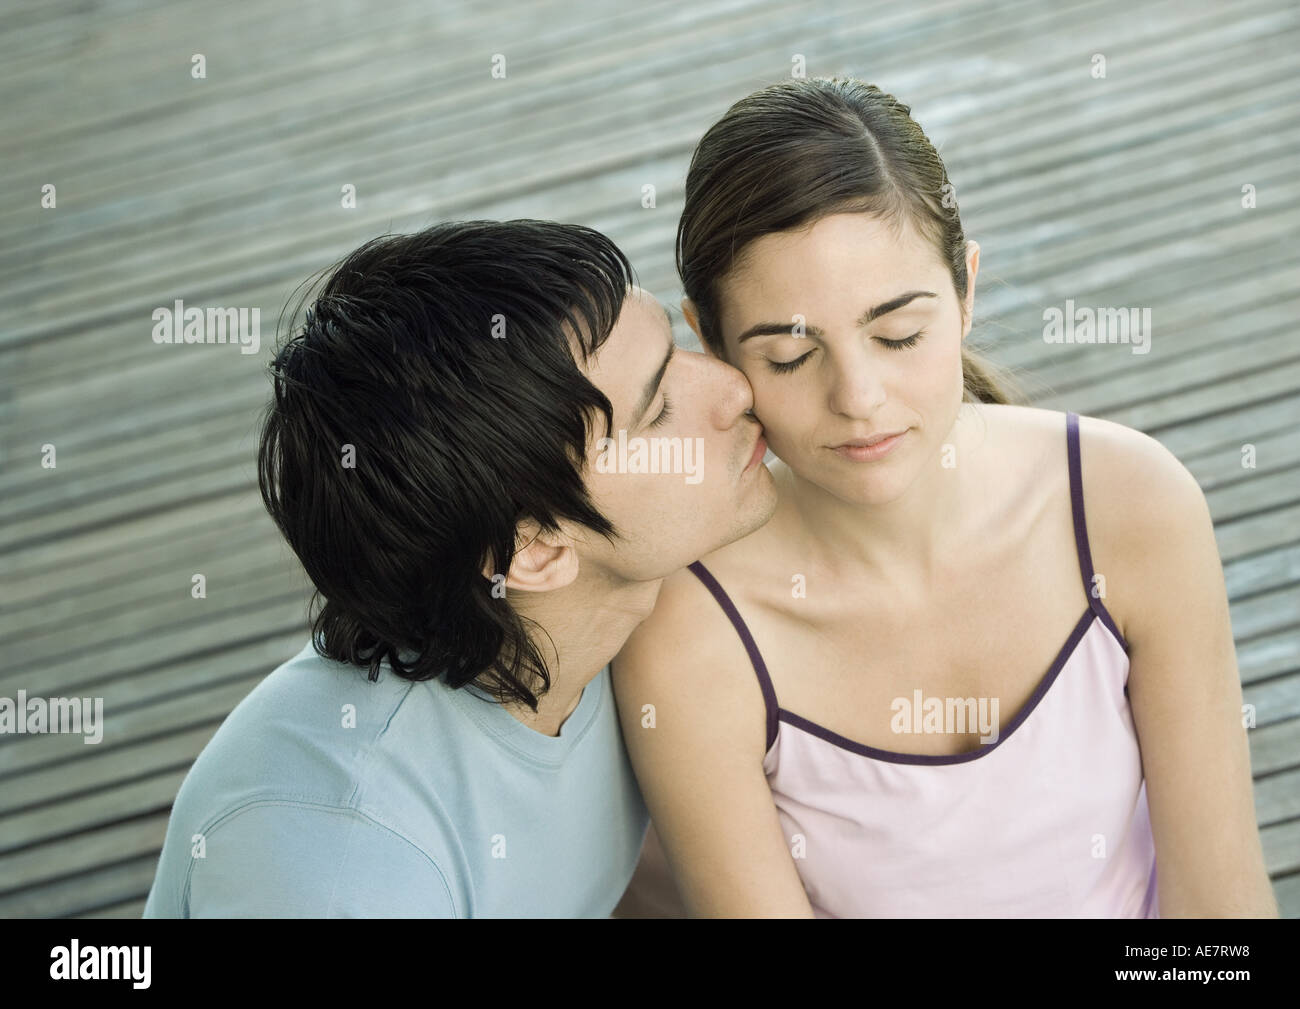 Young man kissing his girlfriend on the cheek, closed eyes, portrait - Stock Image